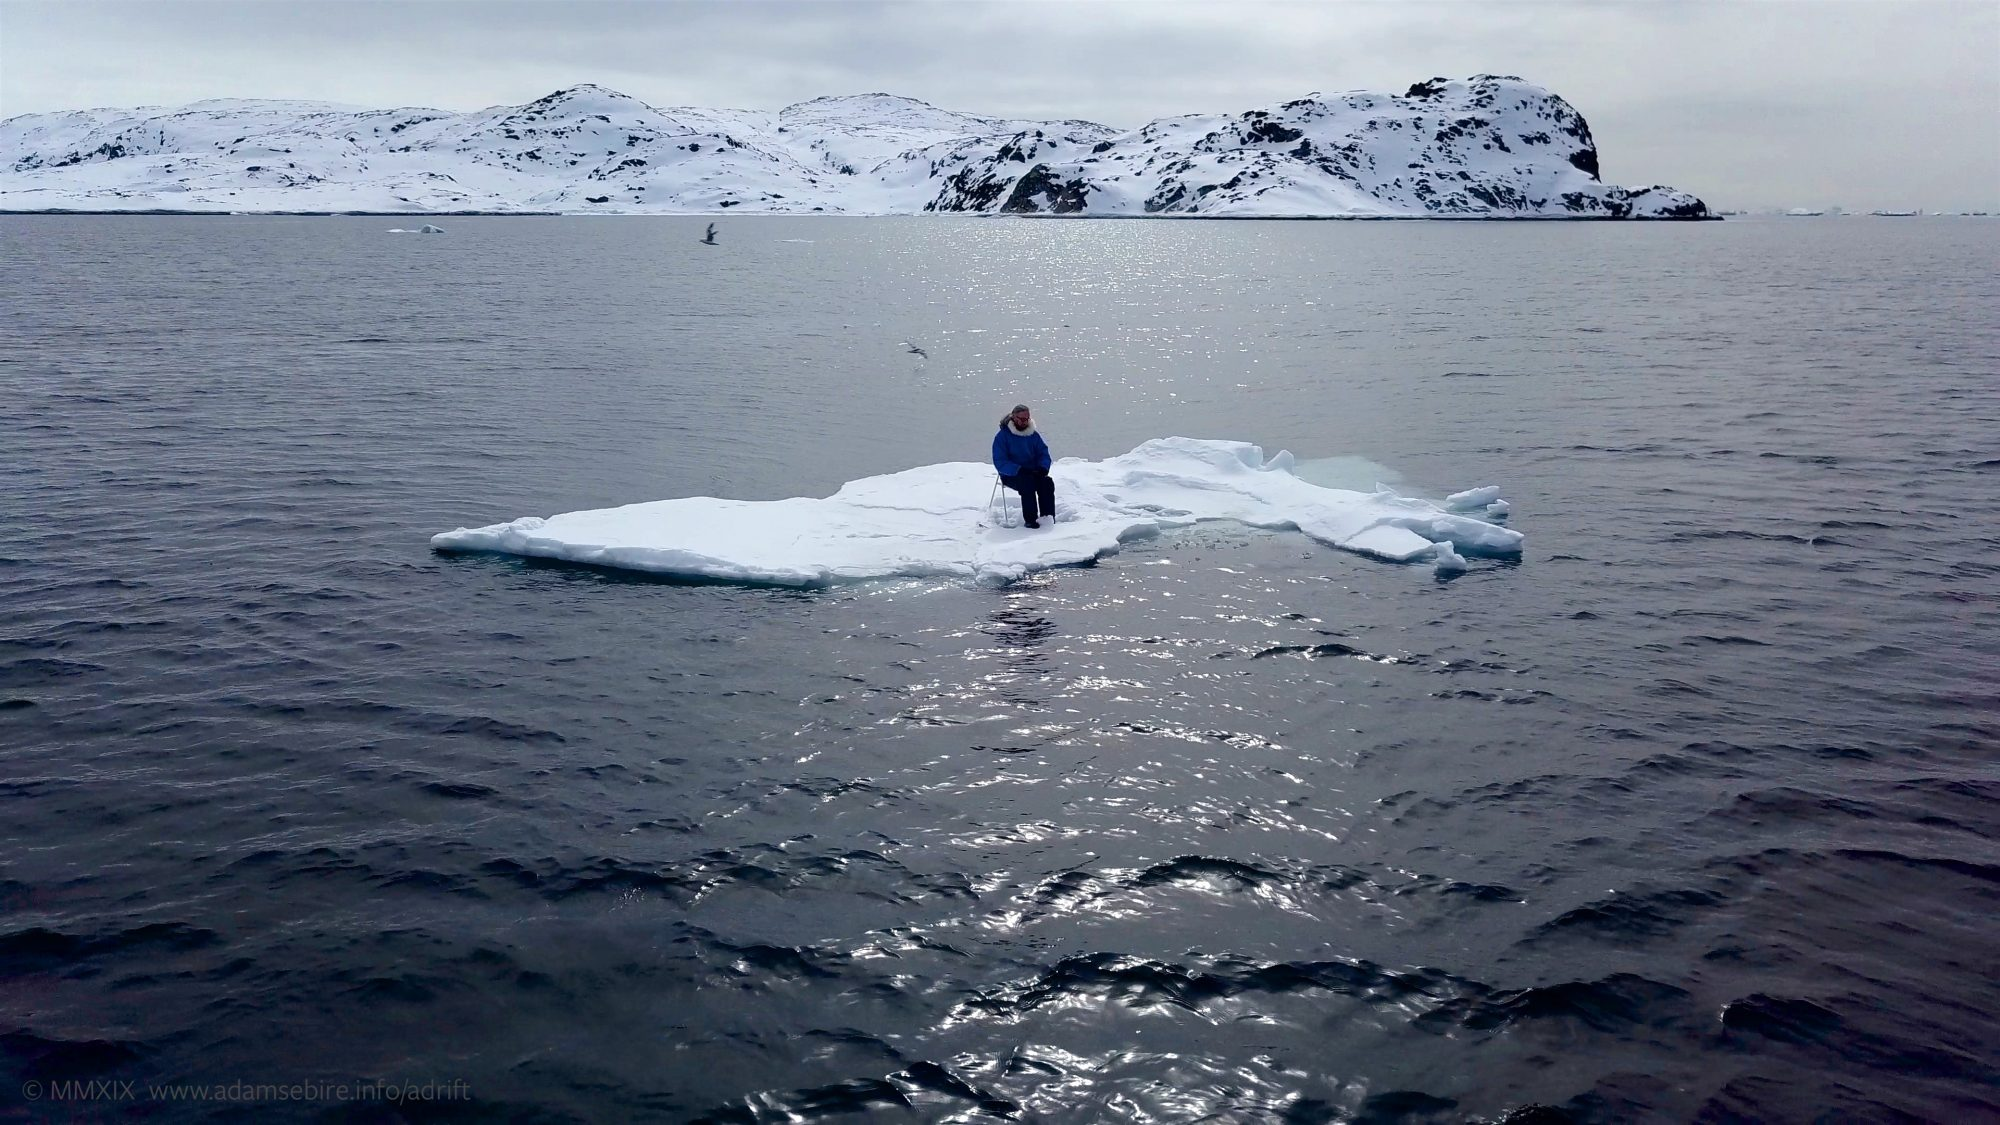 A white piece of ice floats in the Arctic sea, and a man sits in a chair i the middle of it.